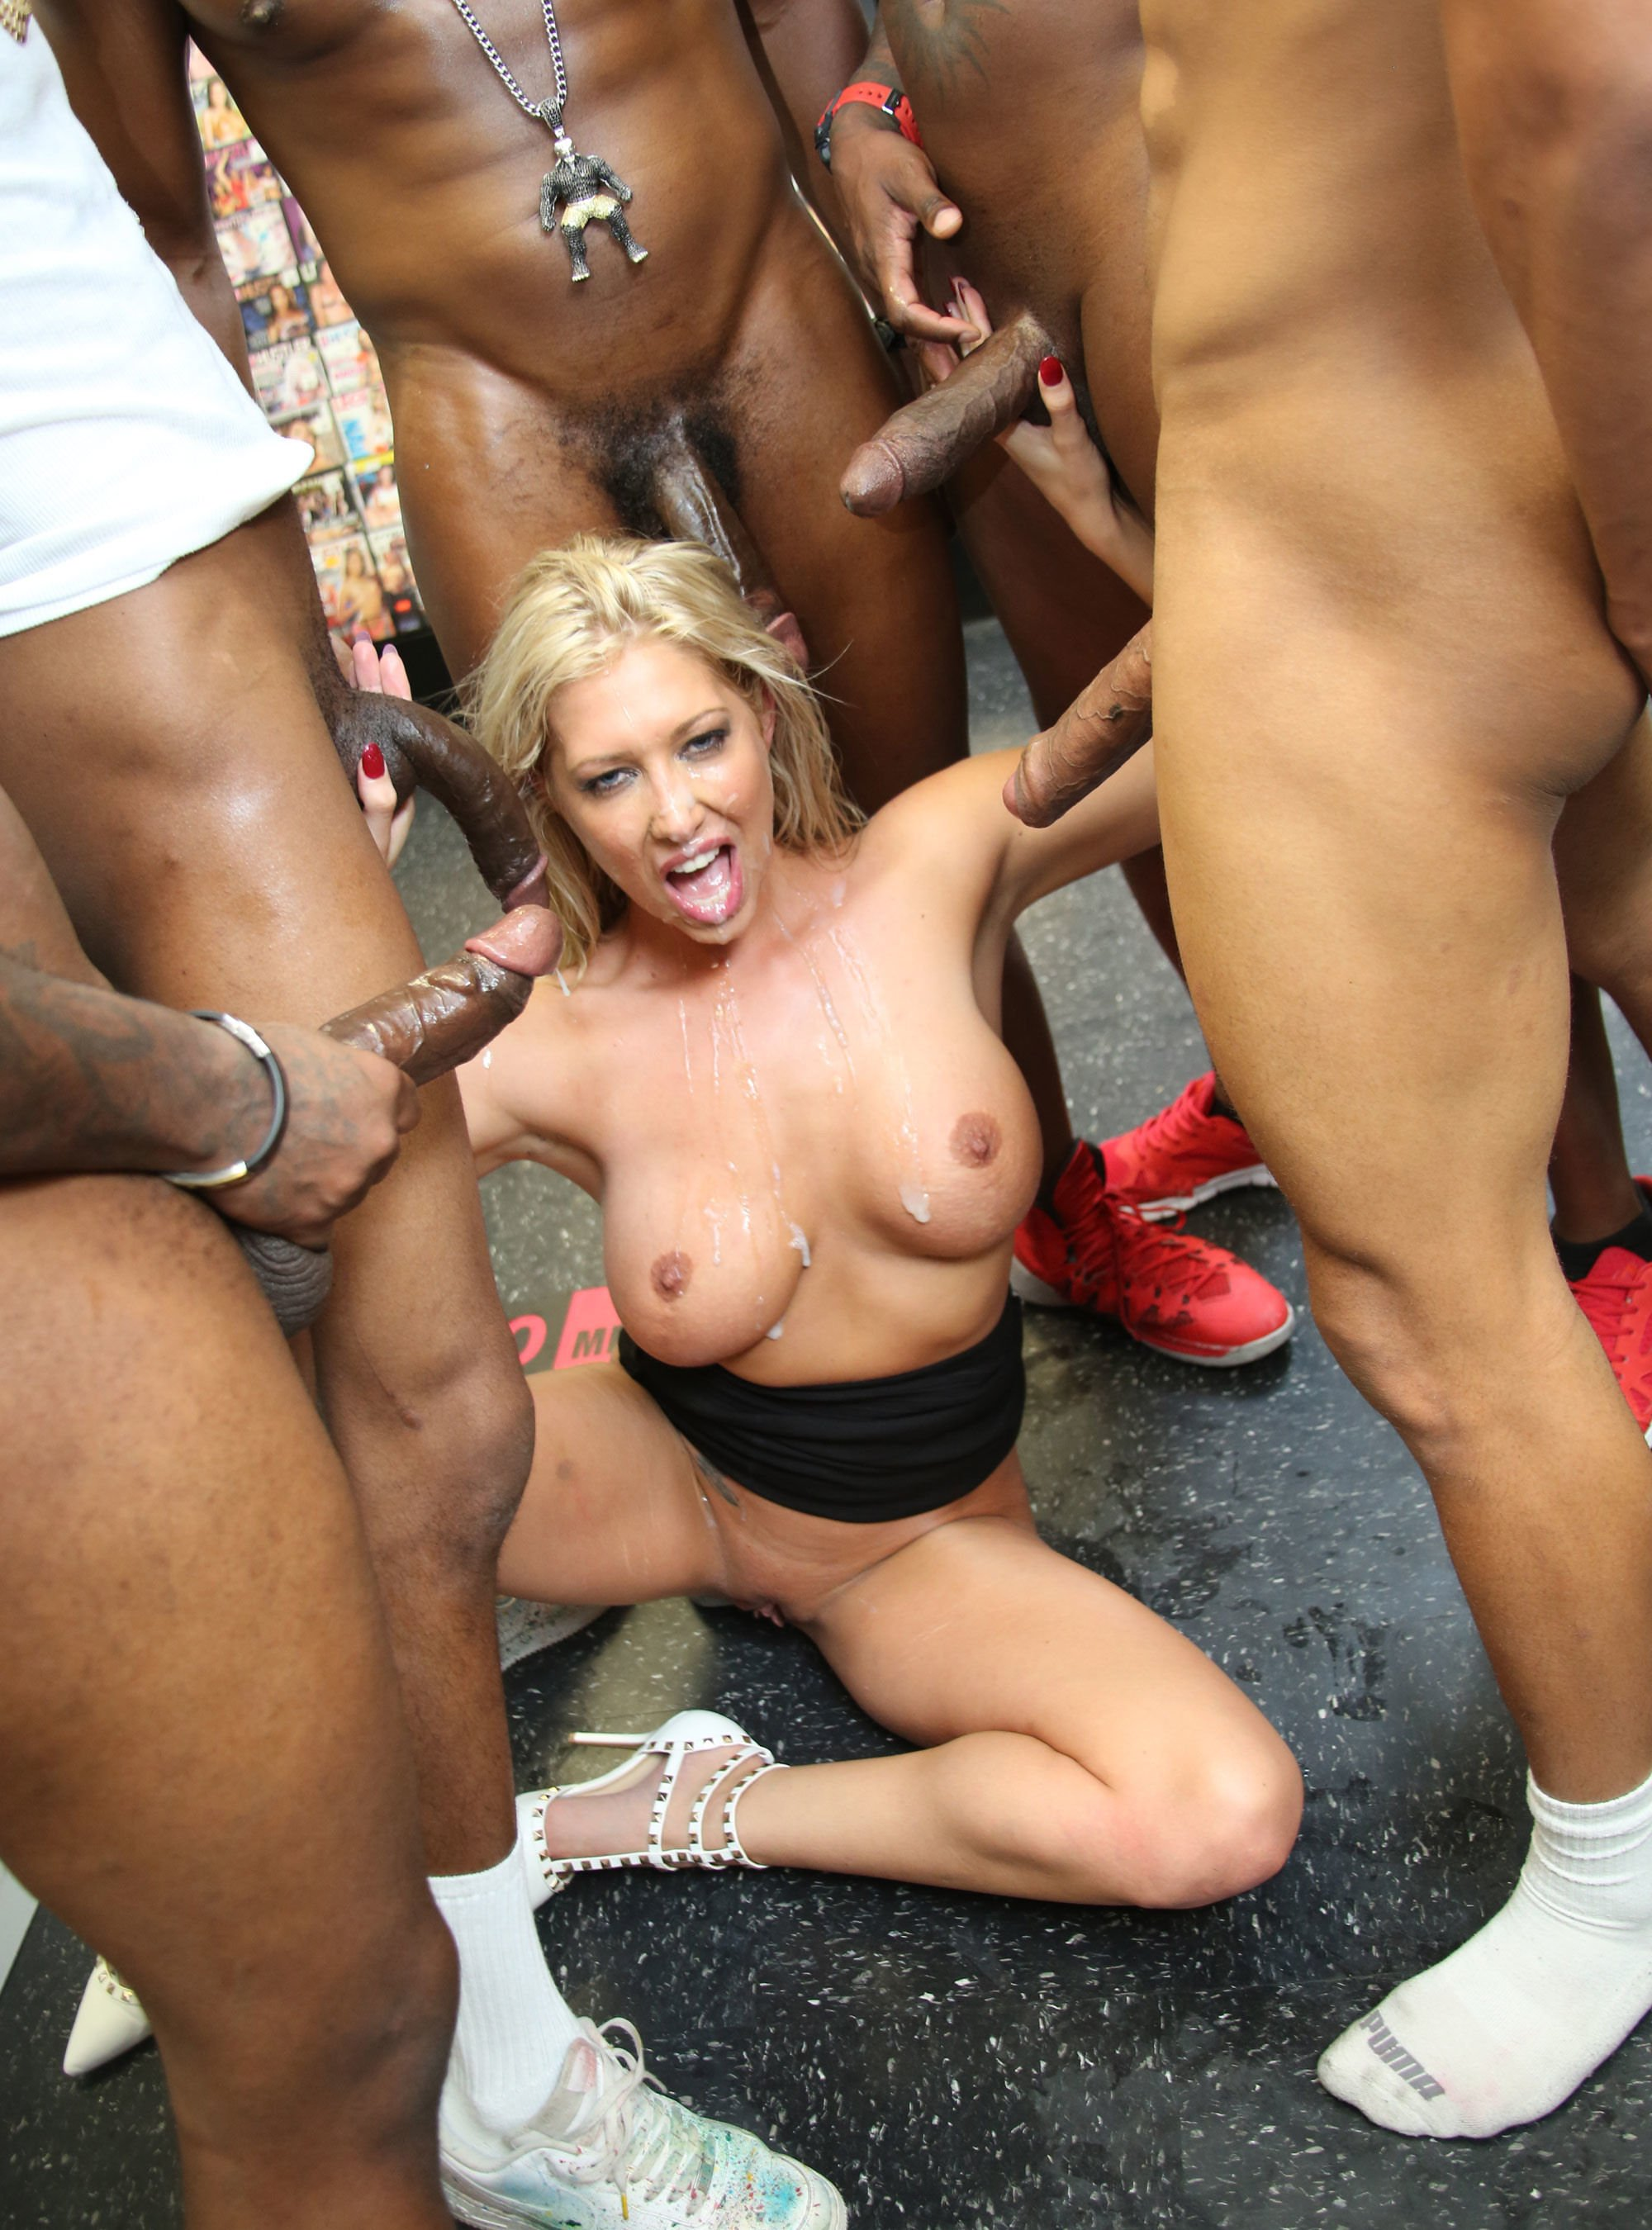 Kilrajas    reccomended Lusty beauty loves riding his hard meat